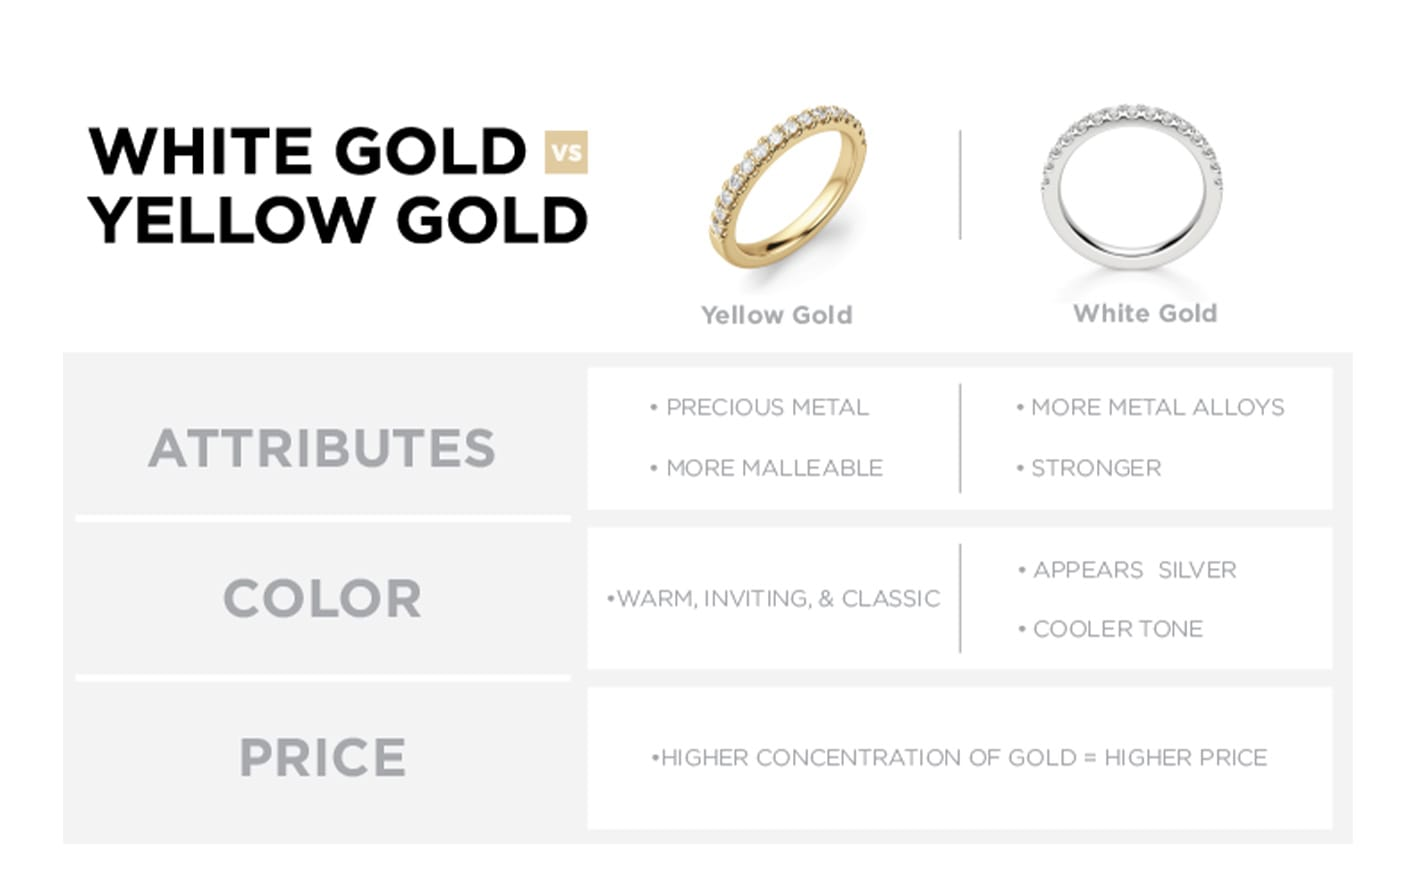 A chart comparing the benefits of yellow and white gold jewelry